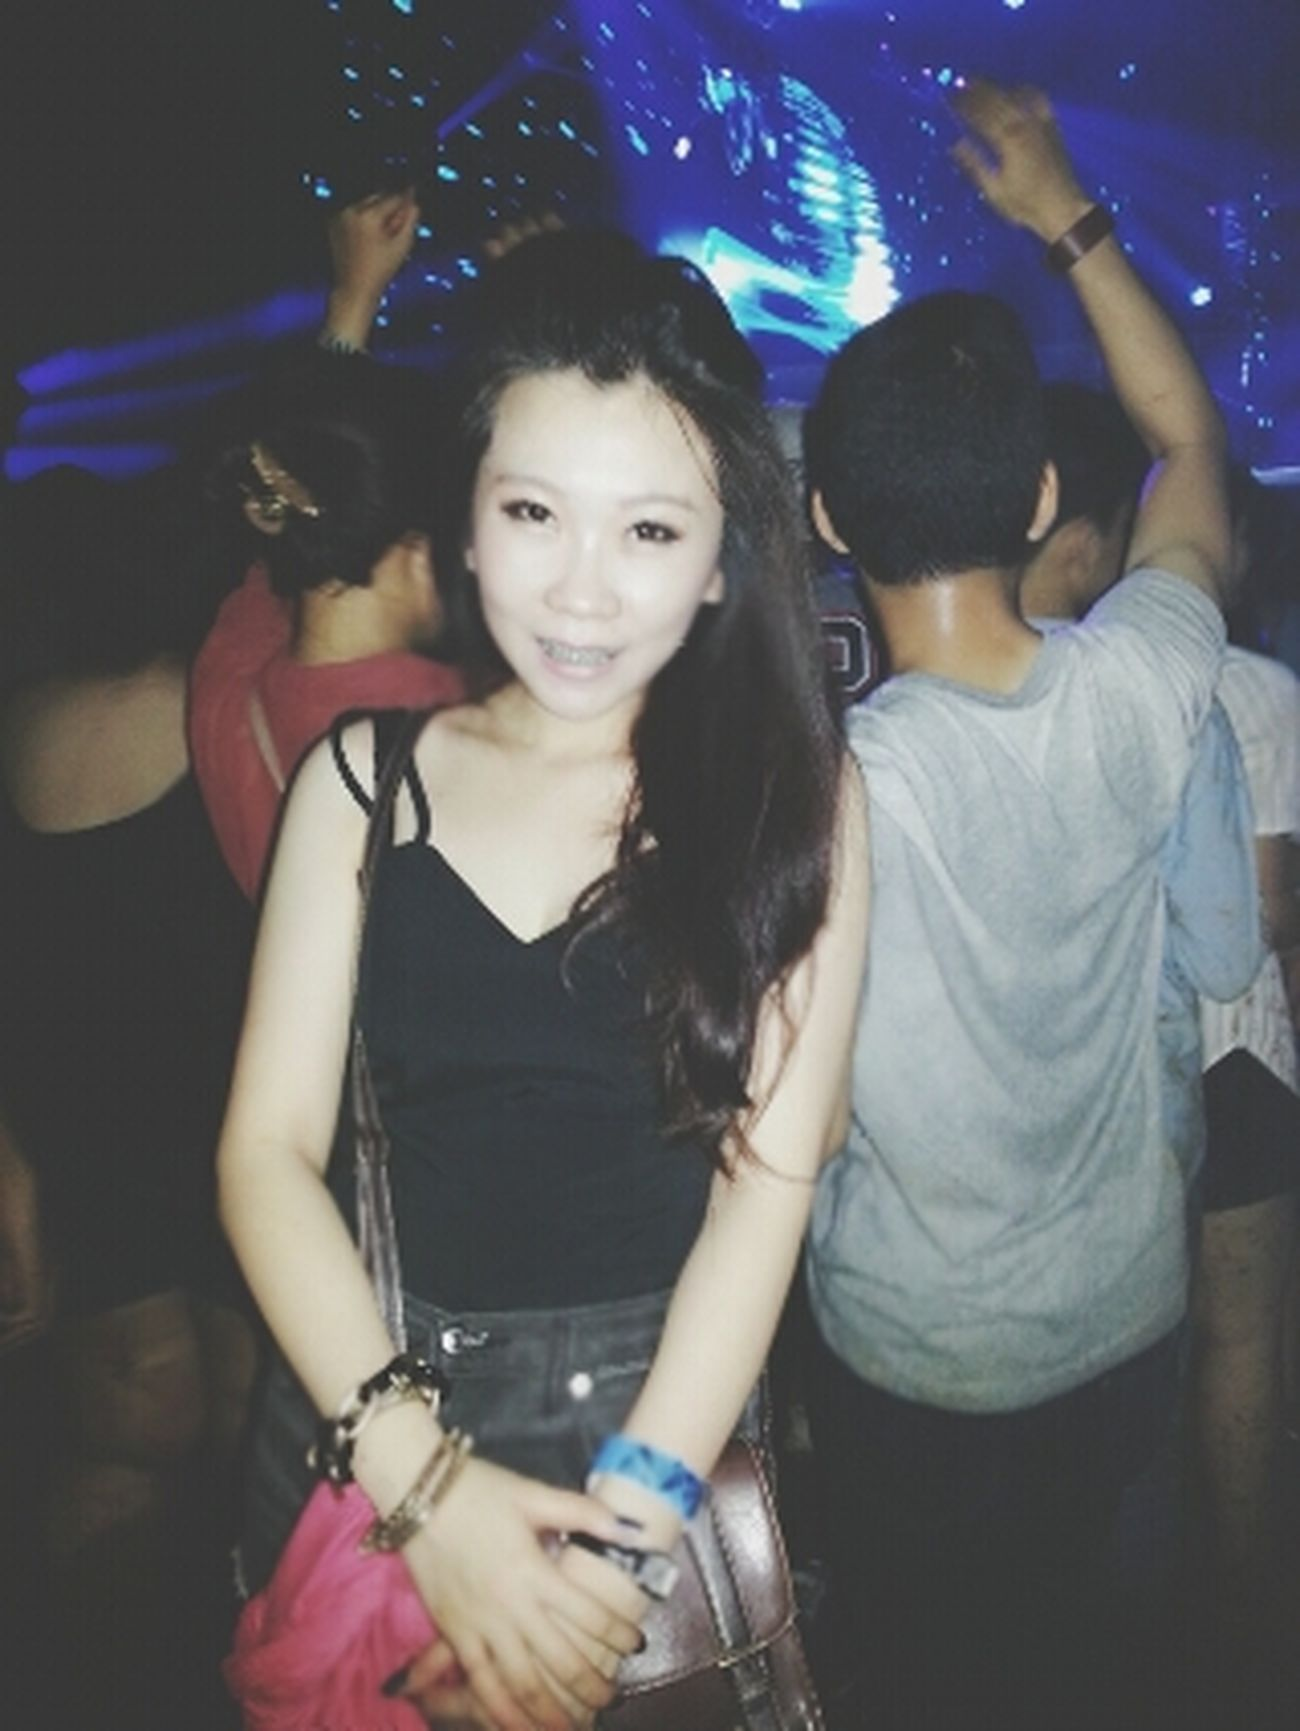 DWP13 DWP13 Showtek Amazing!